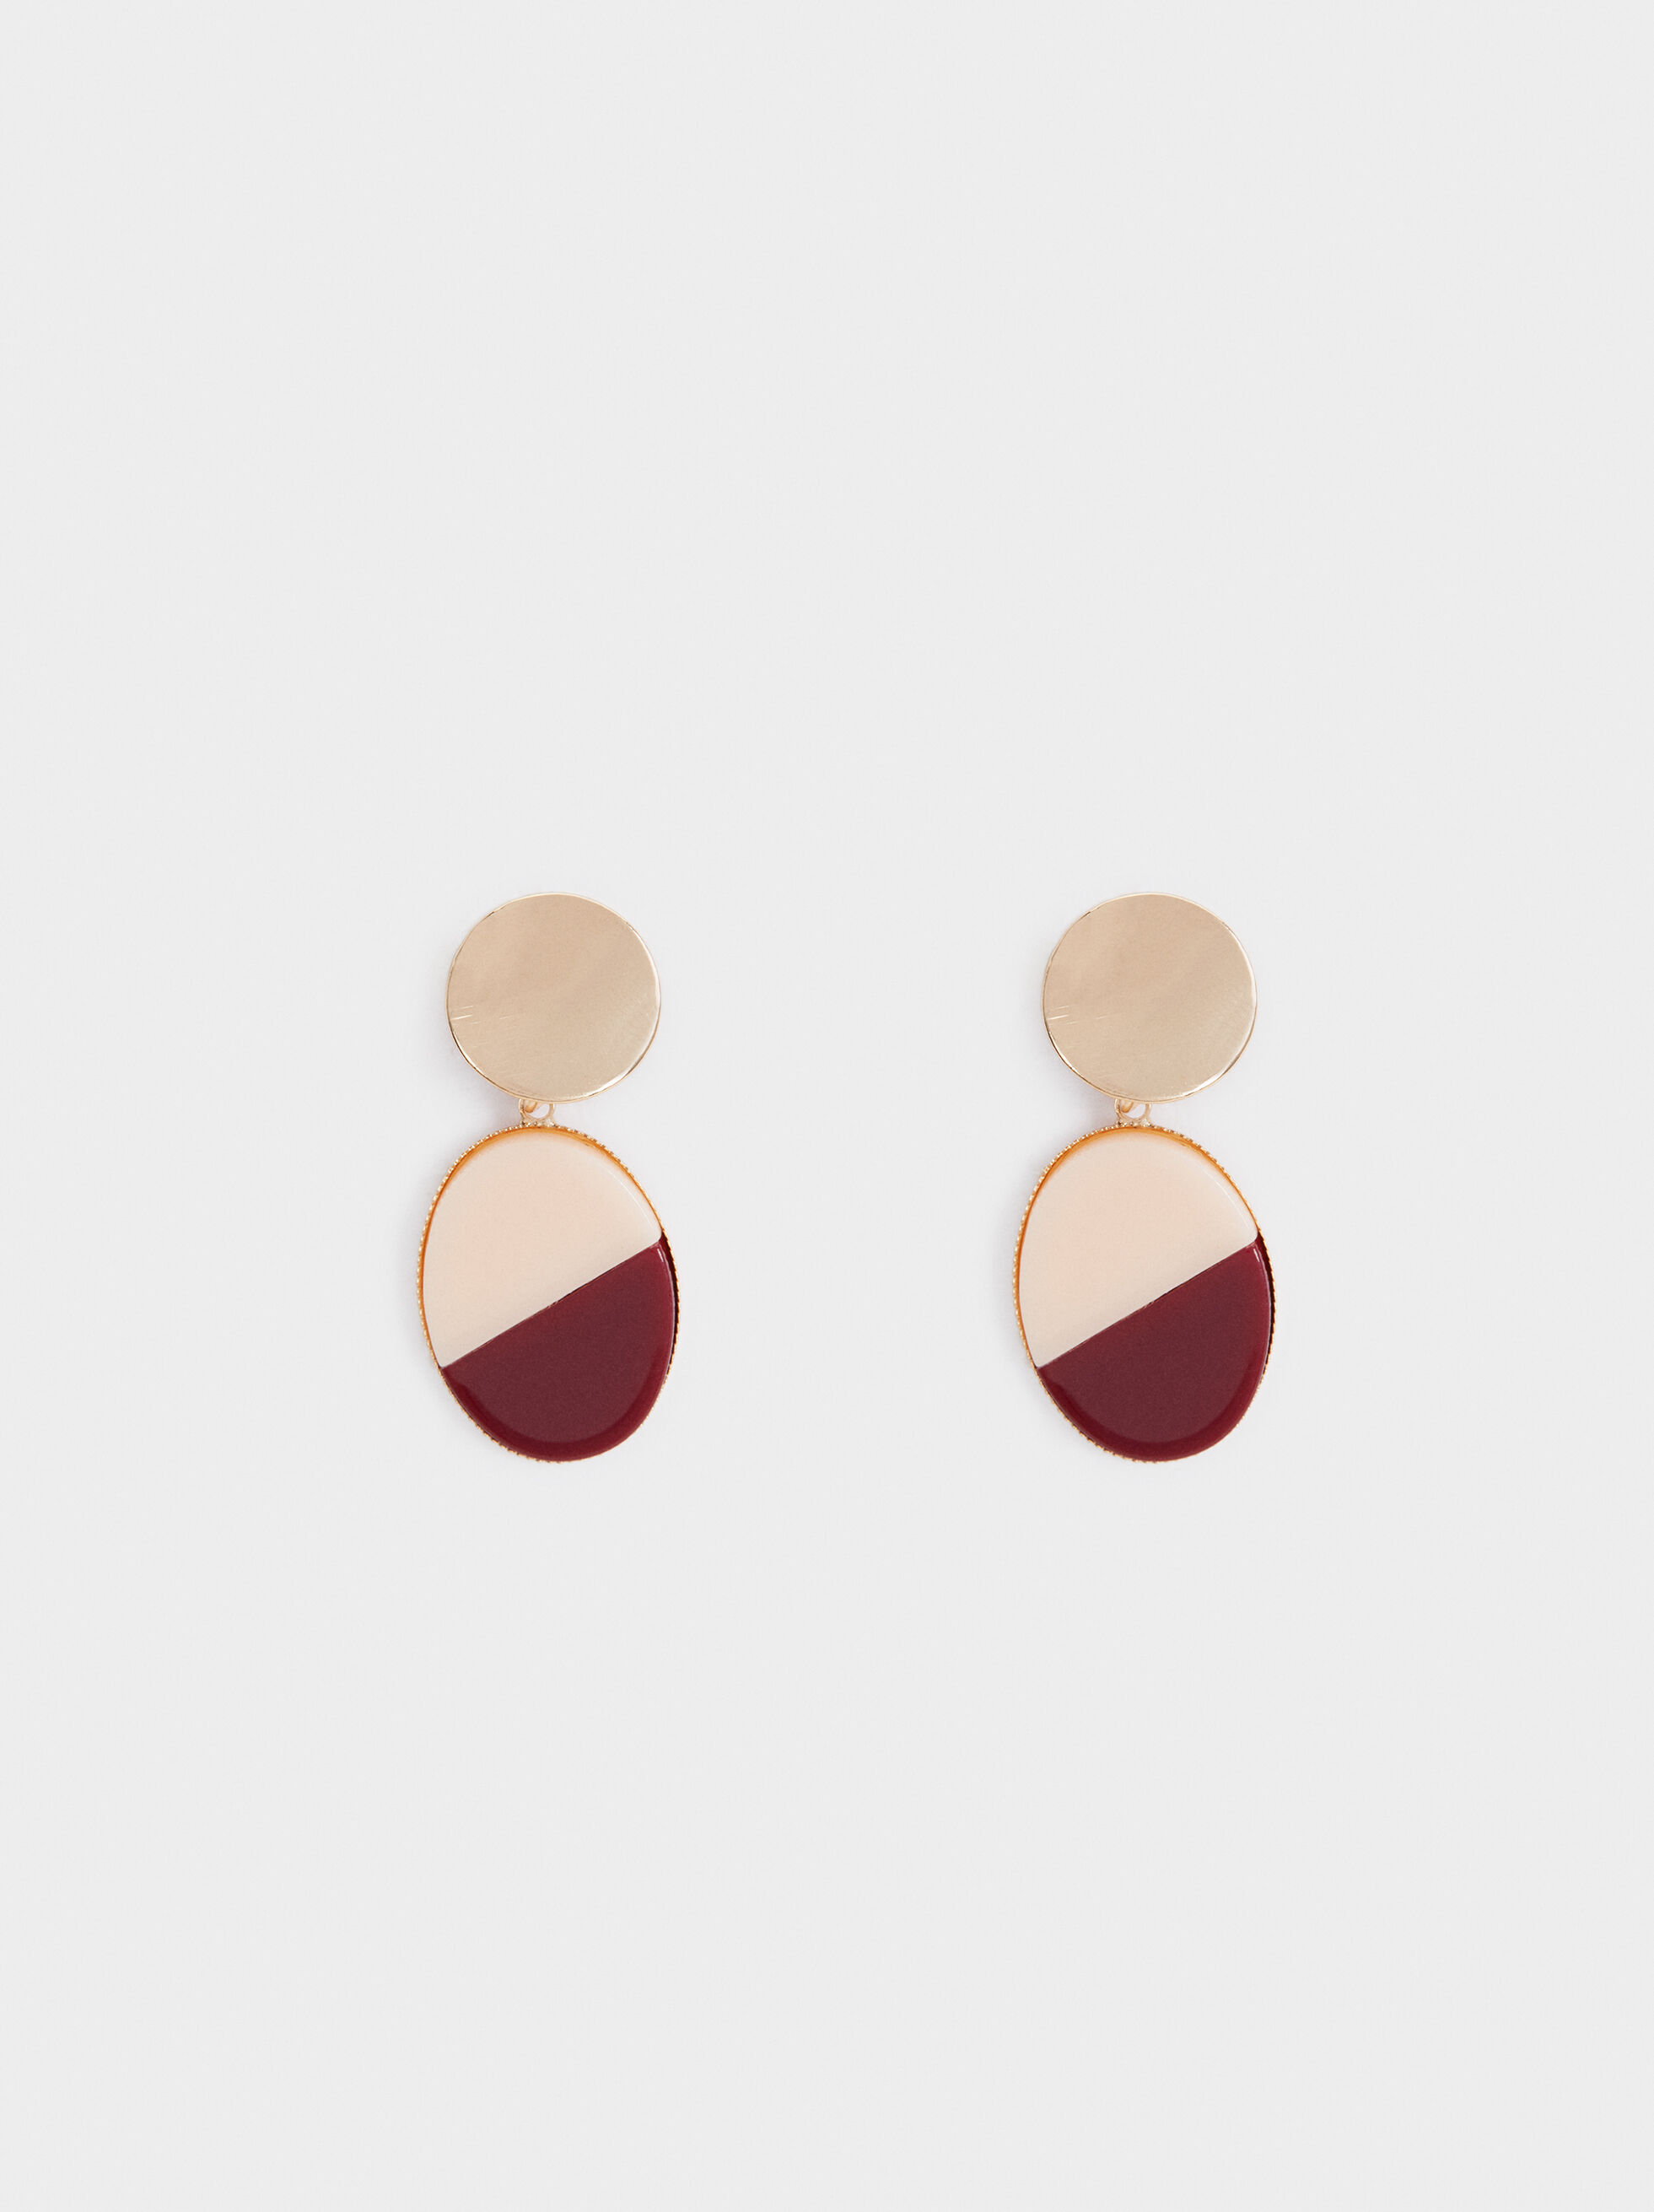 Land Two-Tone Medium Earrings, Multicolor, hi-res